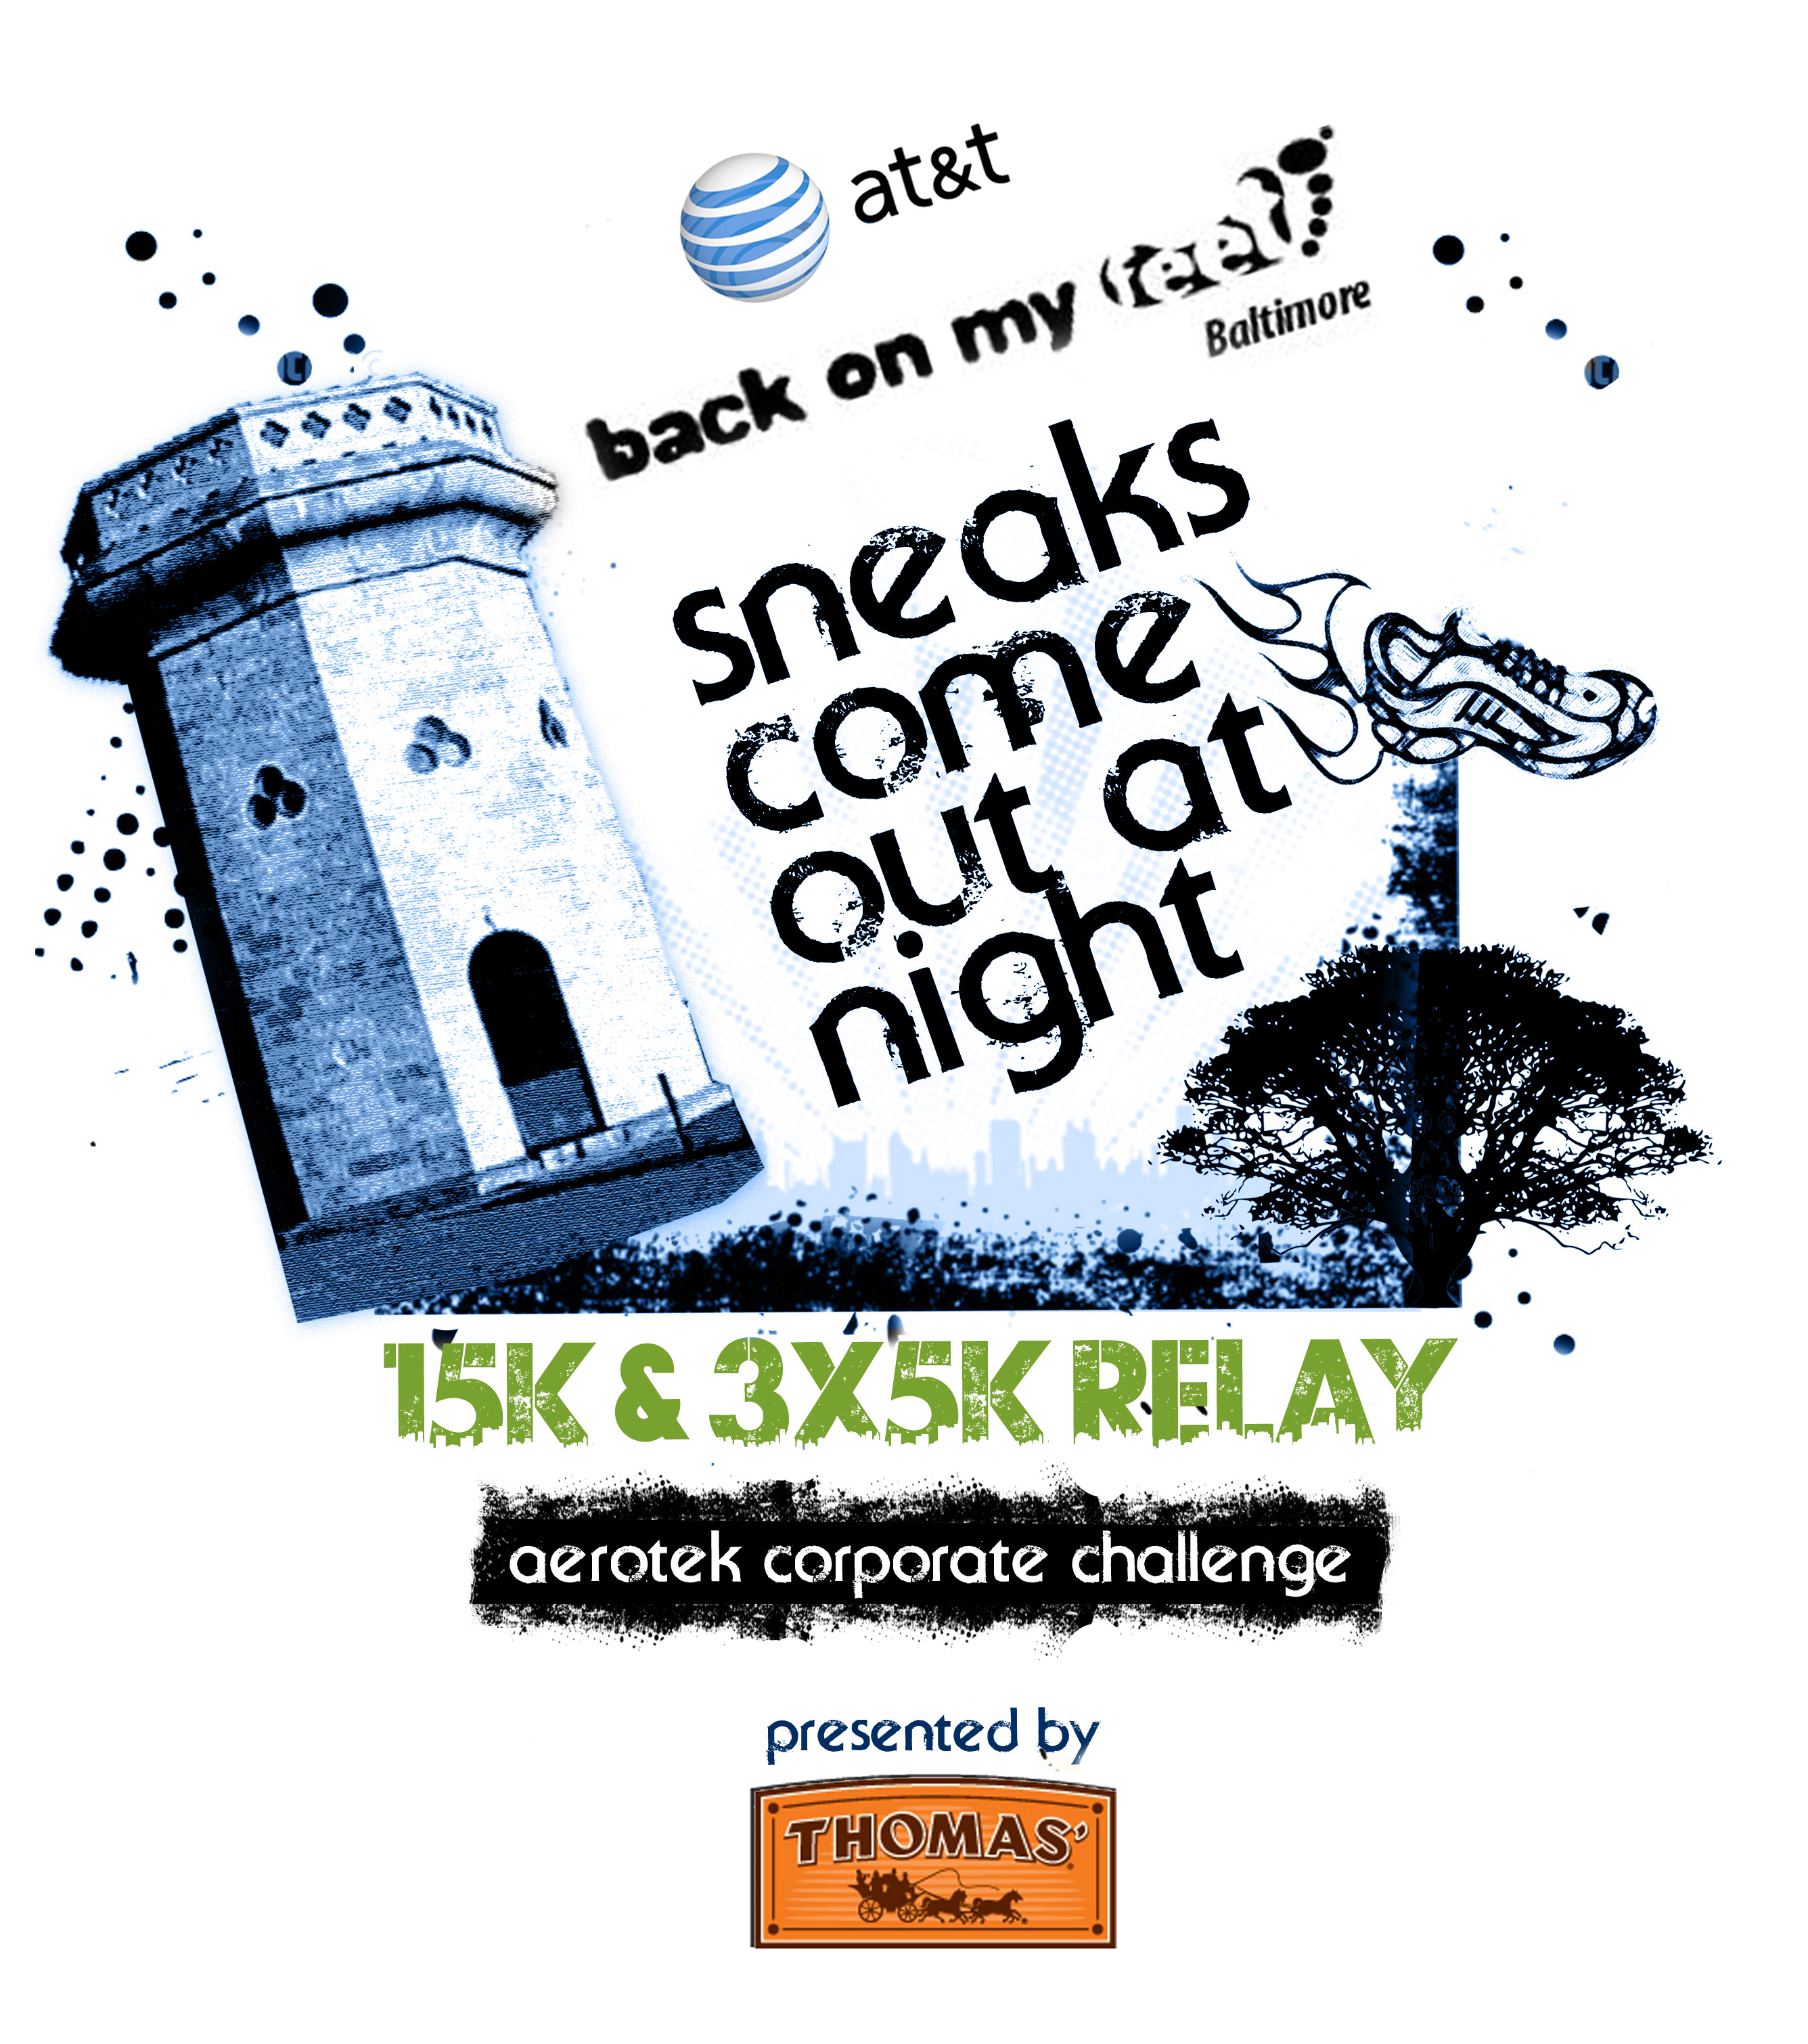 The AT&T Back on My Feet Baltimore Sneaks Come Out at Night 15K, 3x5K Relay & Aerotek Corporate Challenge presented by Thomas'